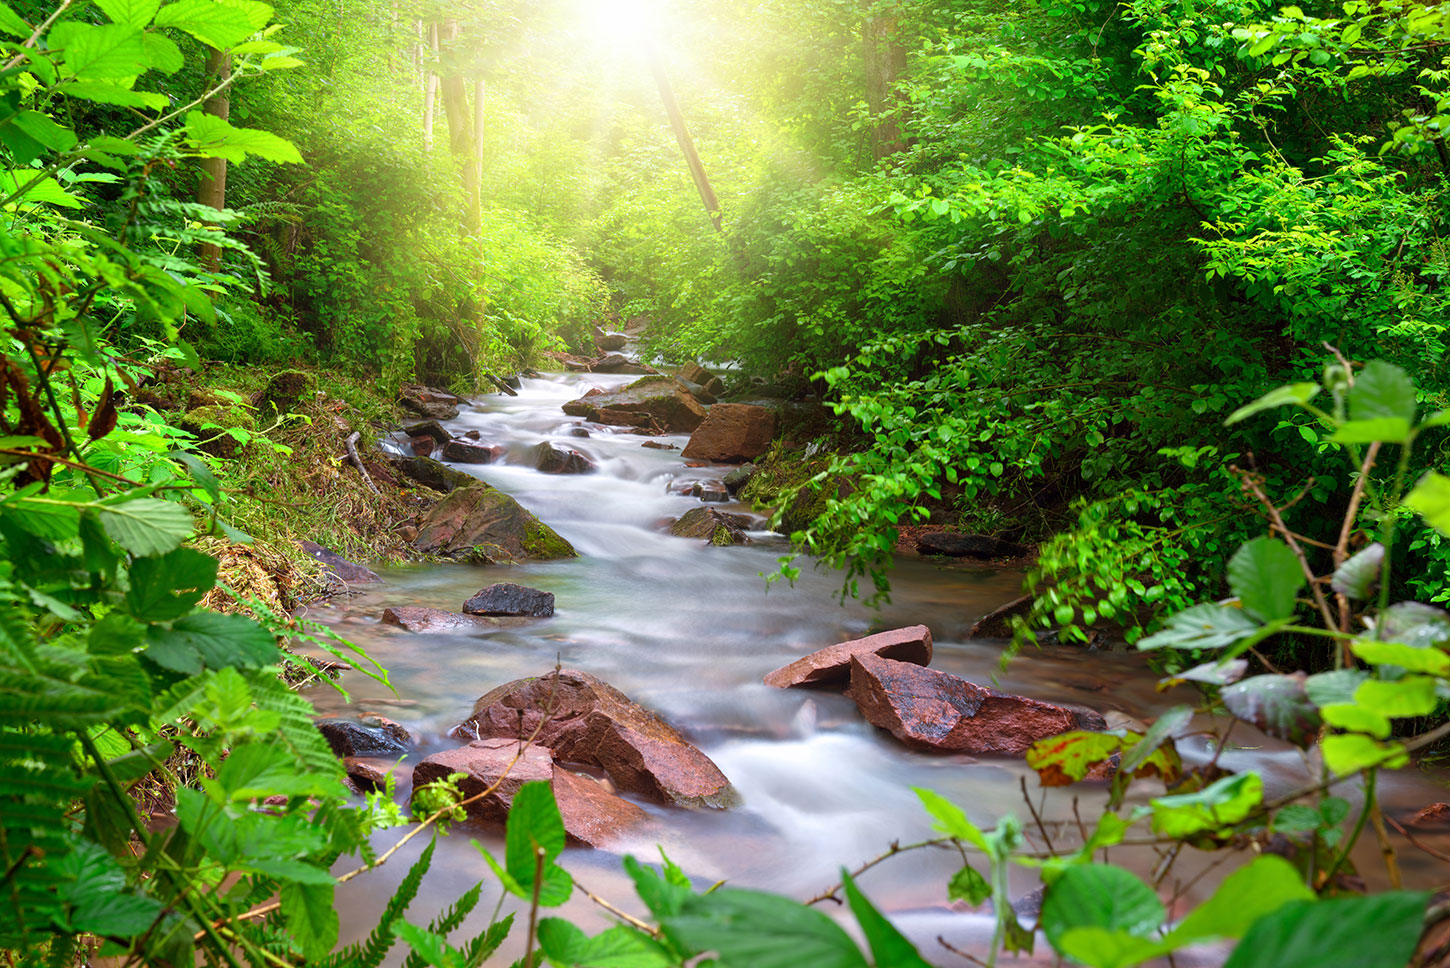 Stream surrounded by green foliage